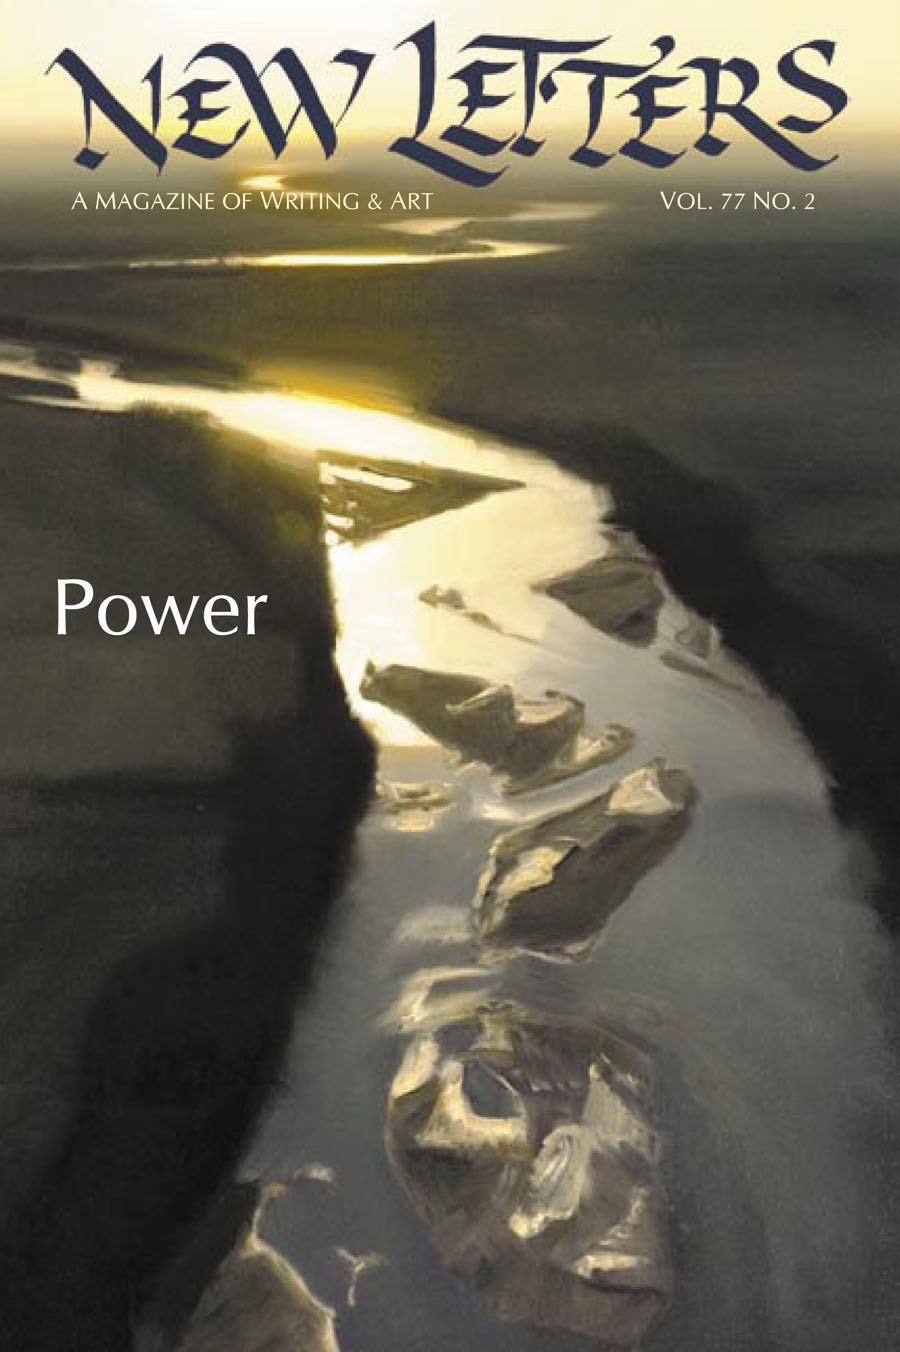 New Letters cover showing power